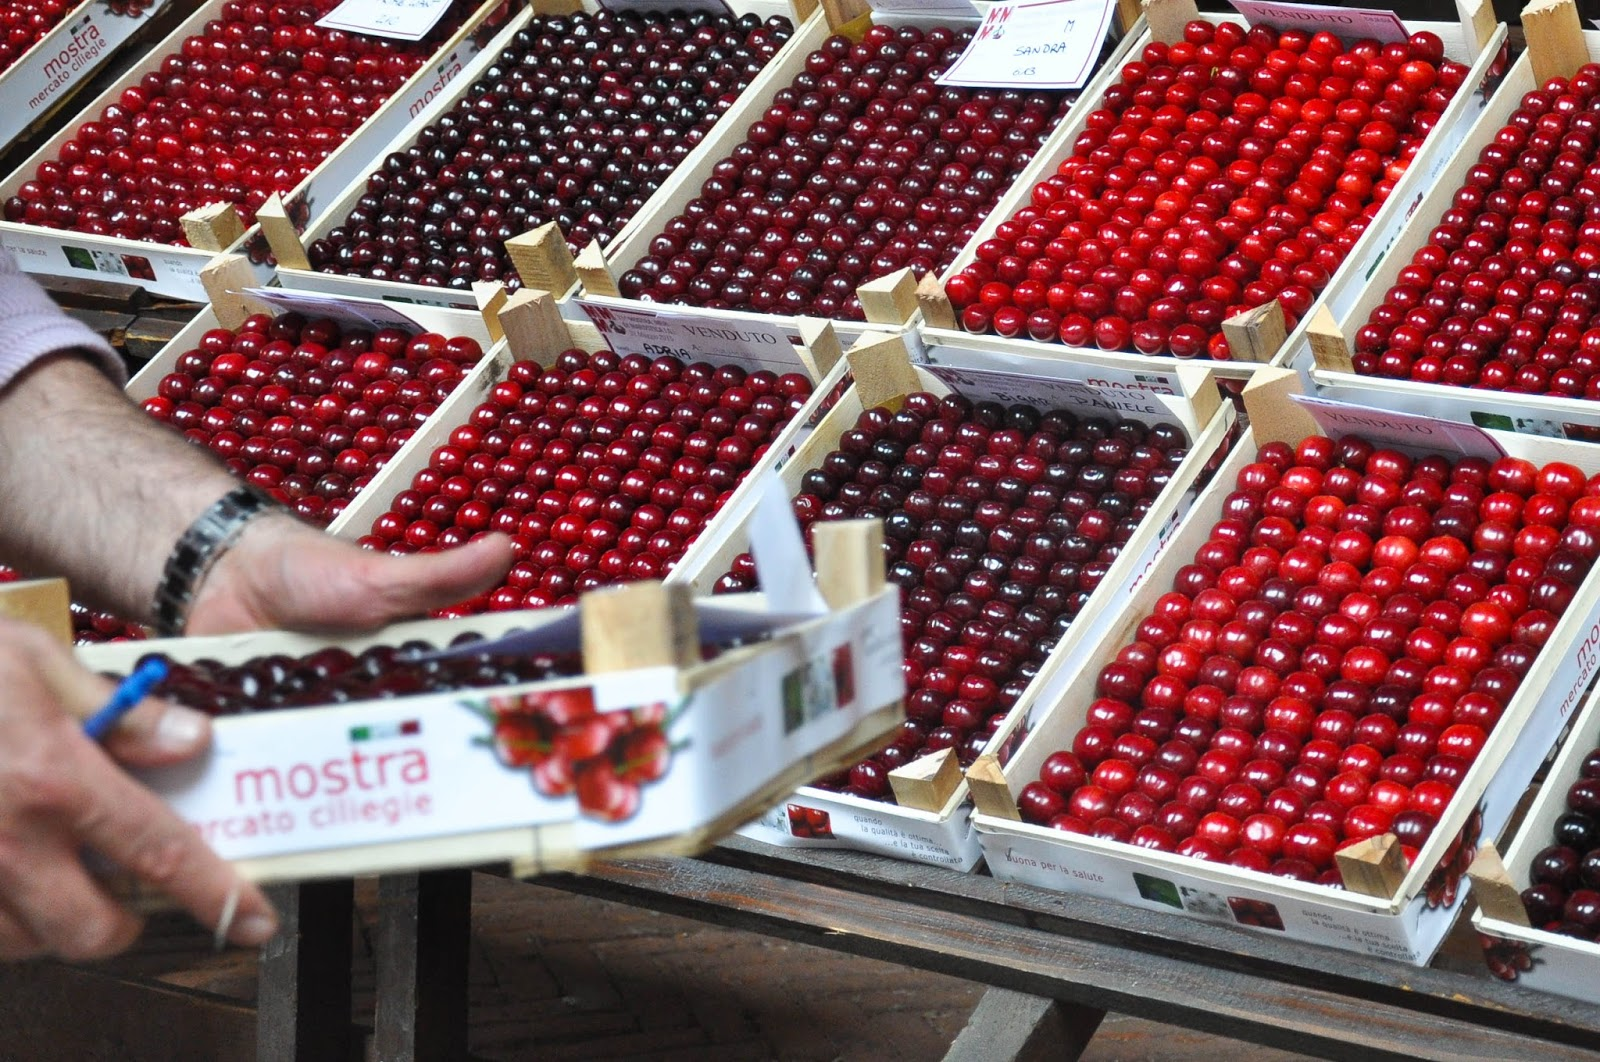 Another one sold, Crates of Premier Cherries, Cherry Show Market, Marostica, Veneto, Italy